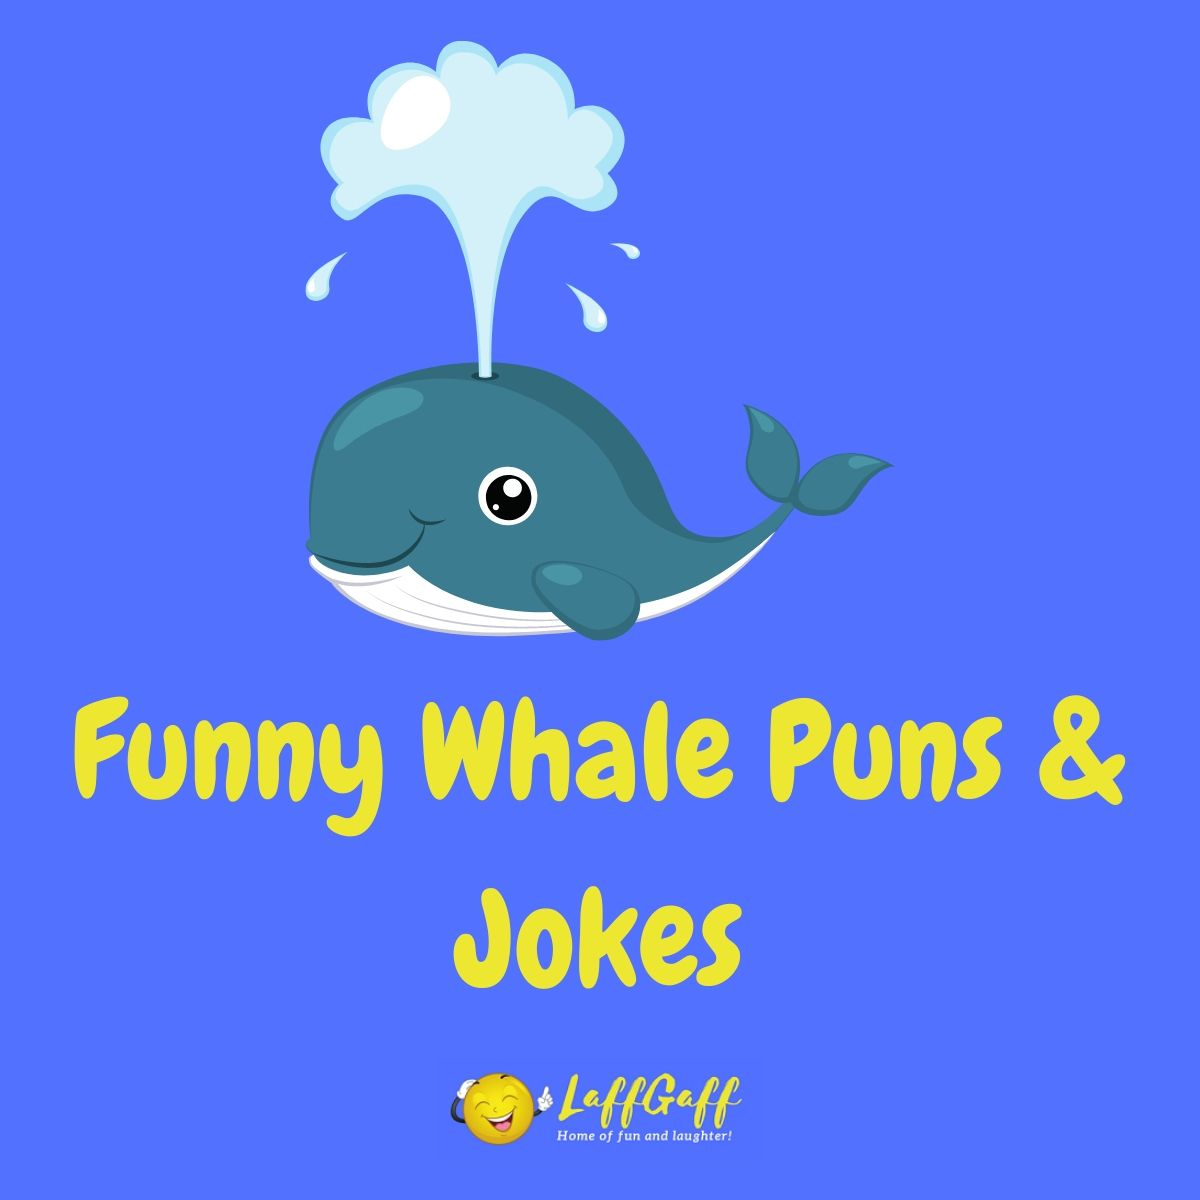 Featured image for a page of funny whale puns & jokes.